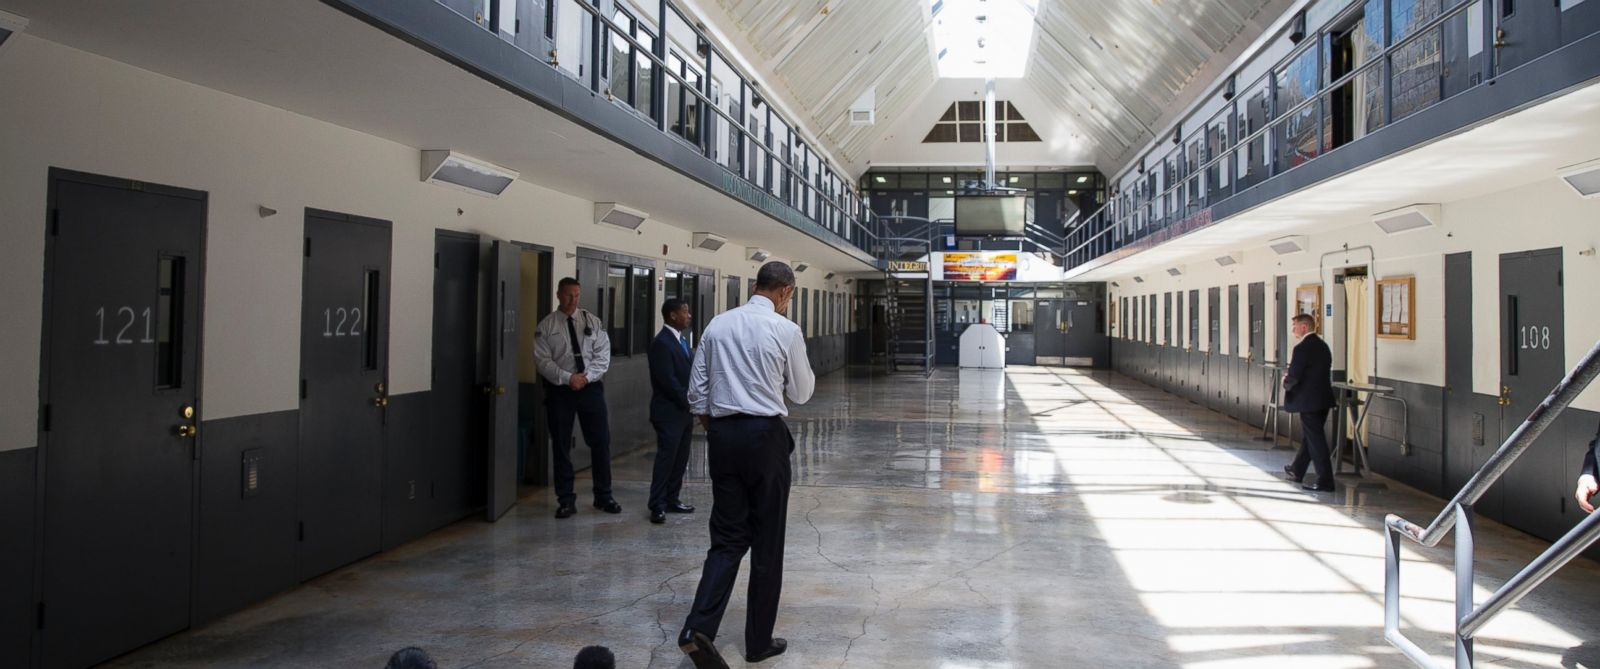 Justice department announces effort to end use of private for Bureau of prisons